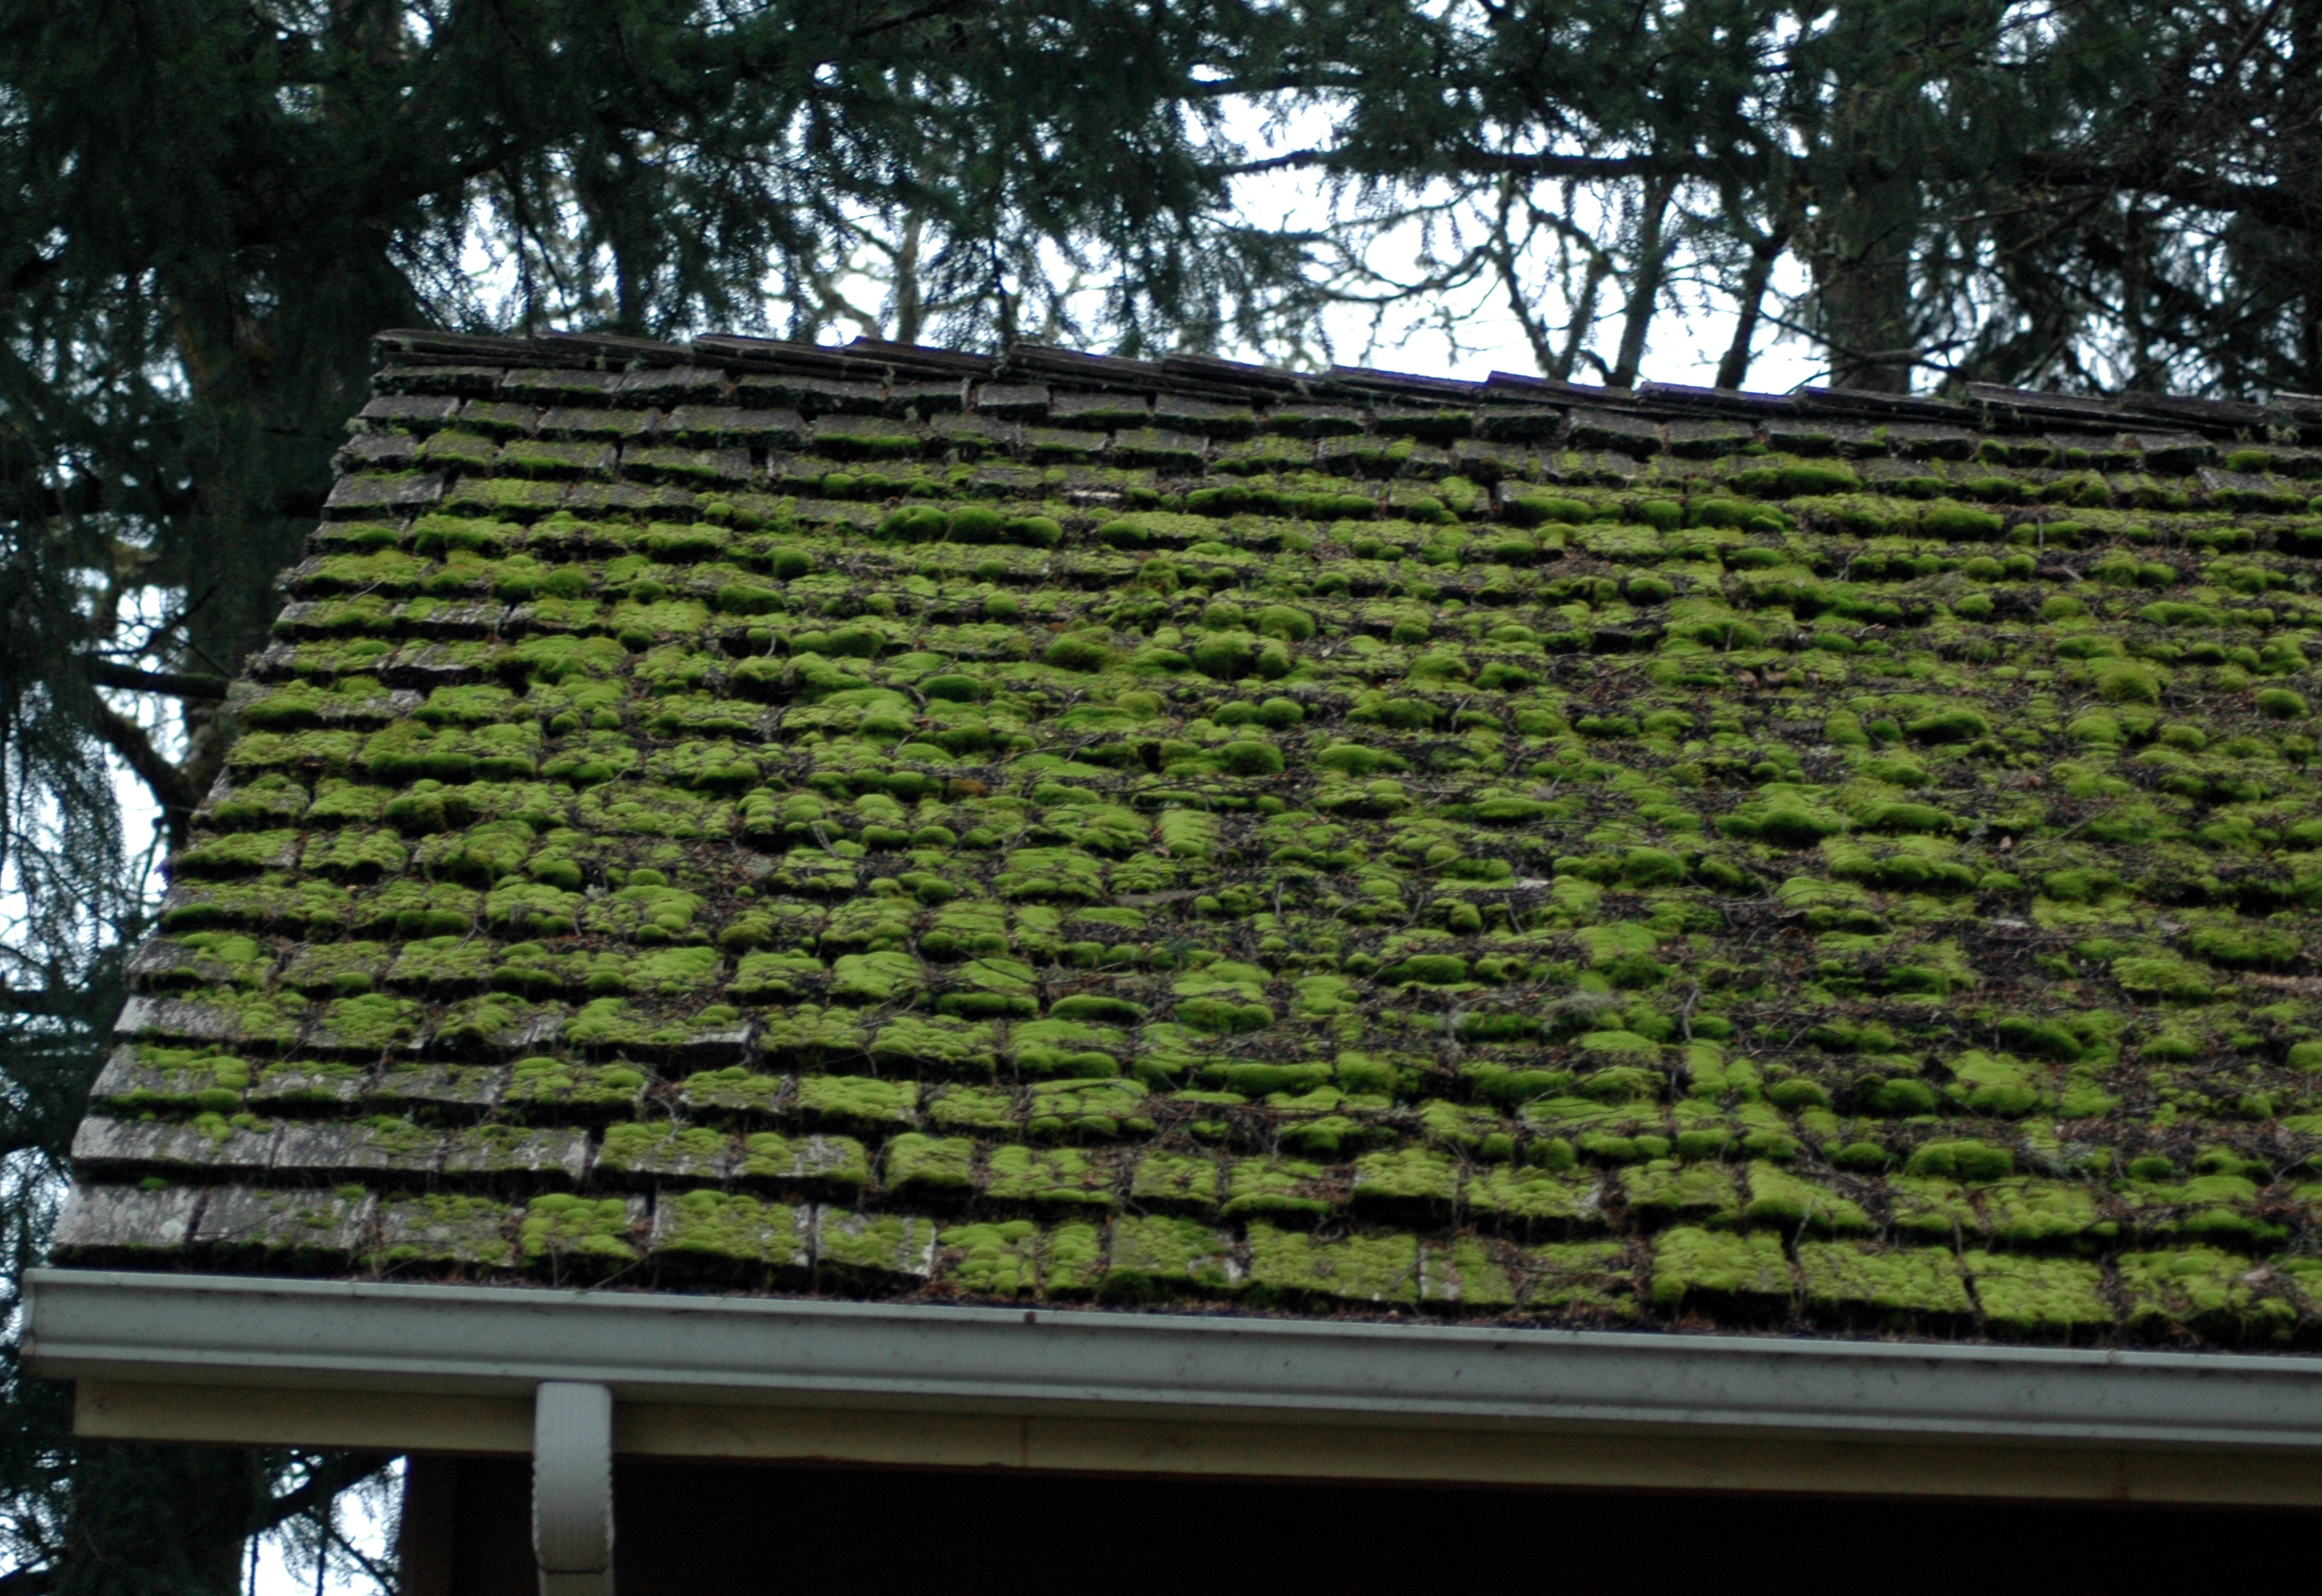 roof_moss_on_wood_roof_dsc_0164.jpg